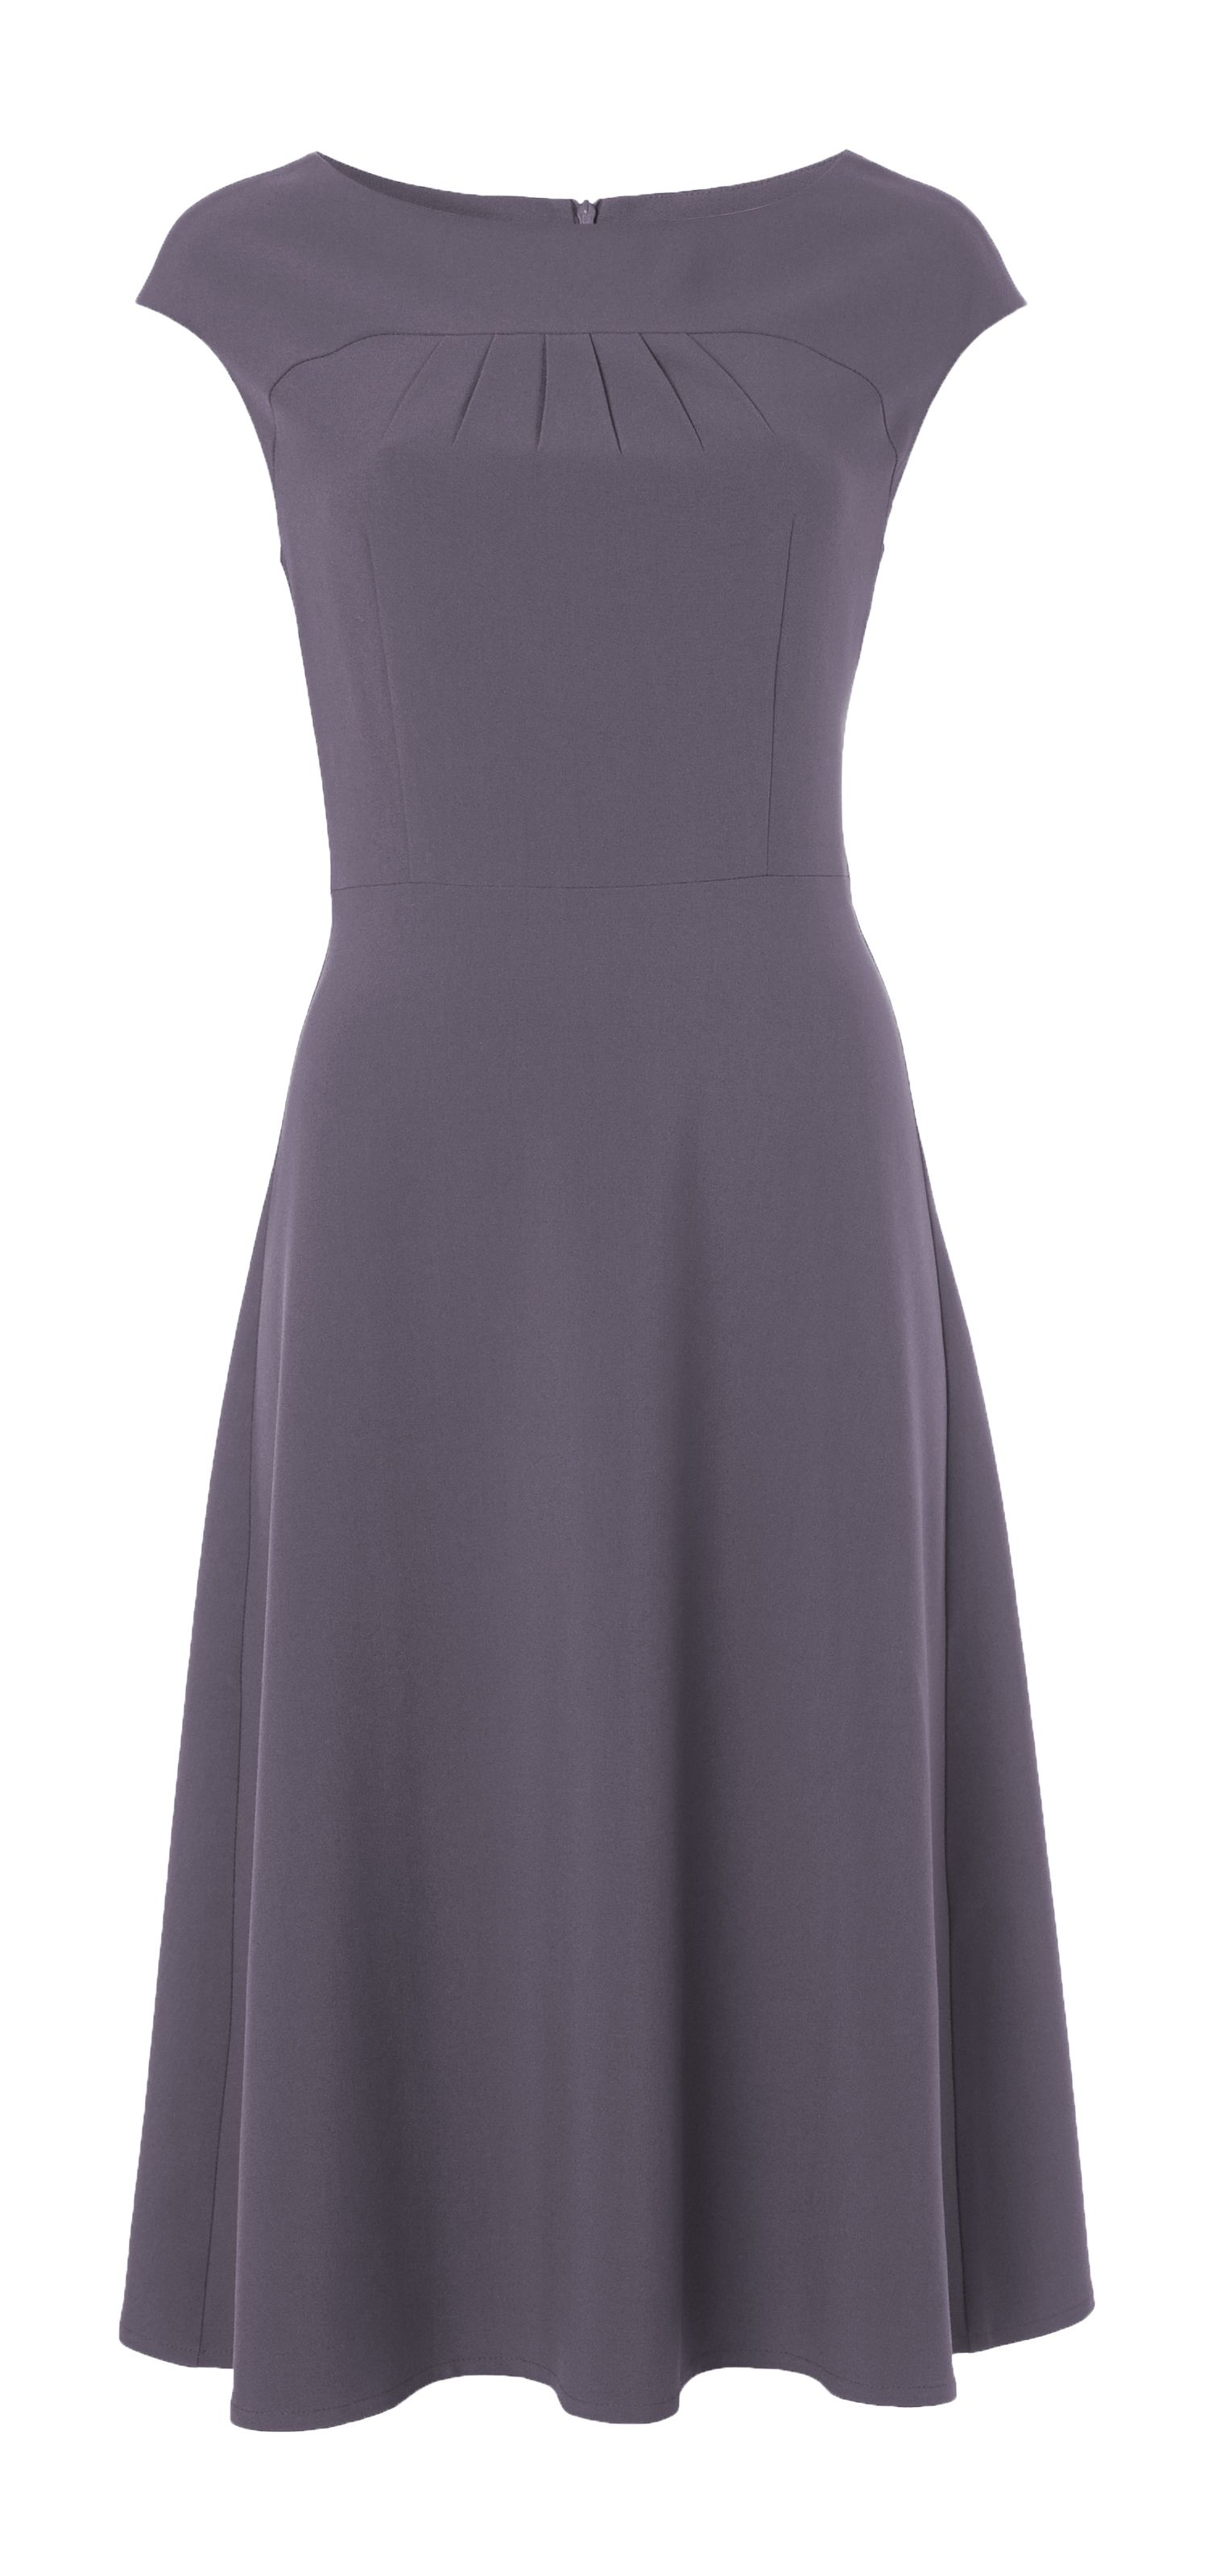 Fit-and-flare work dress Odrey features flattering cut line and ...